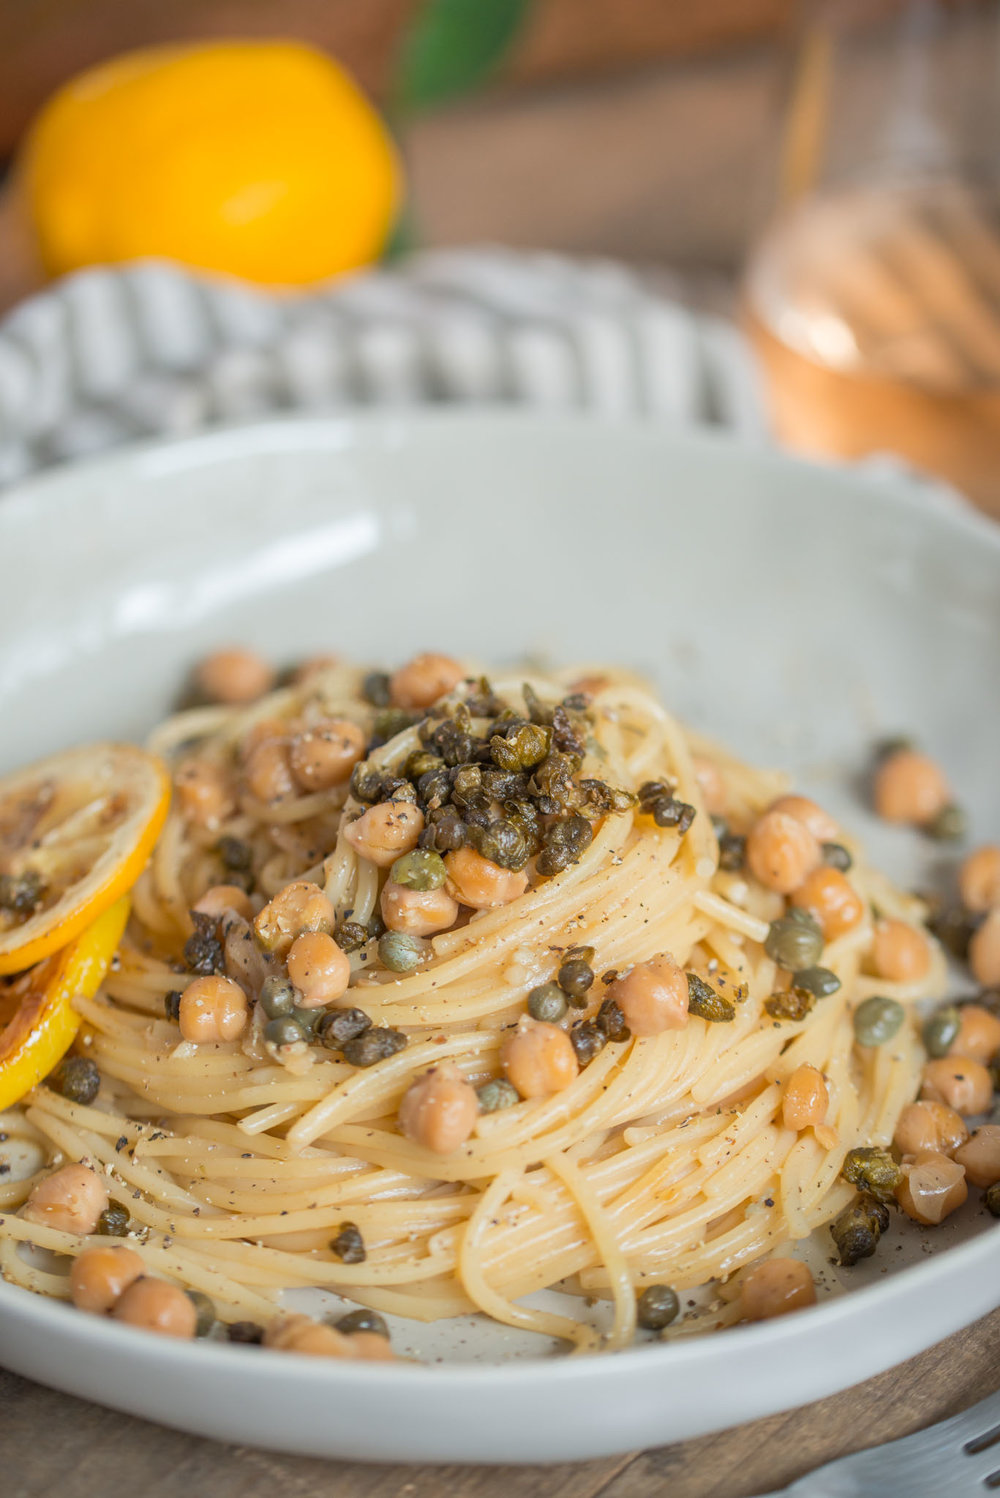 Mixed & Measured | Pasta With Crispy Capers Chickpeas Lemon-5.jpg